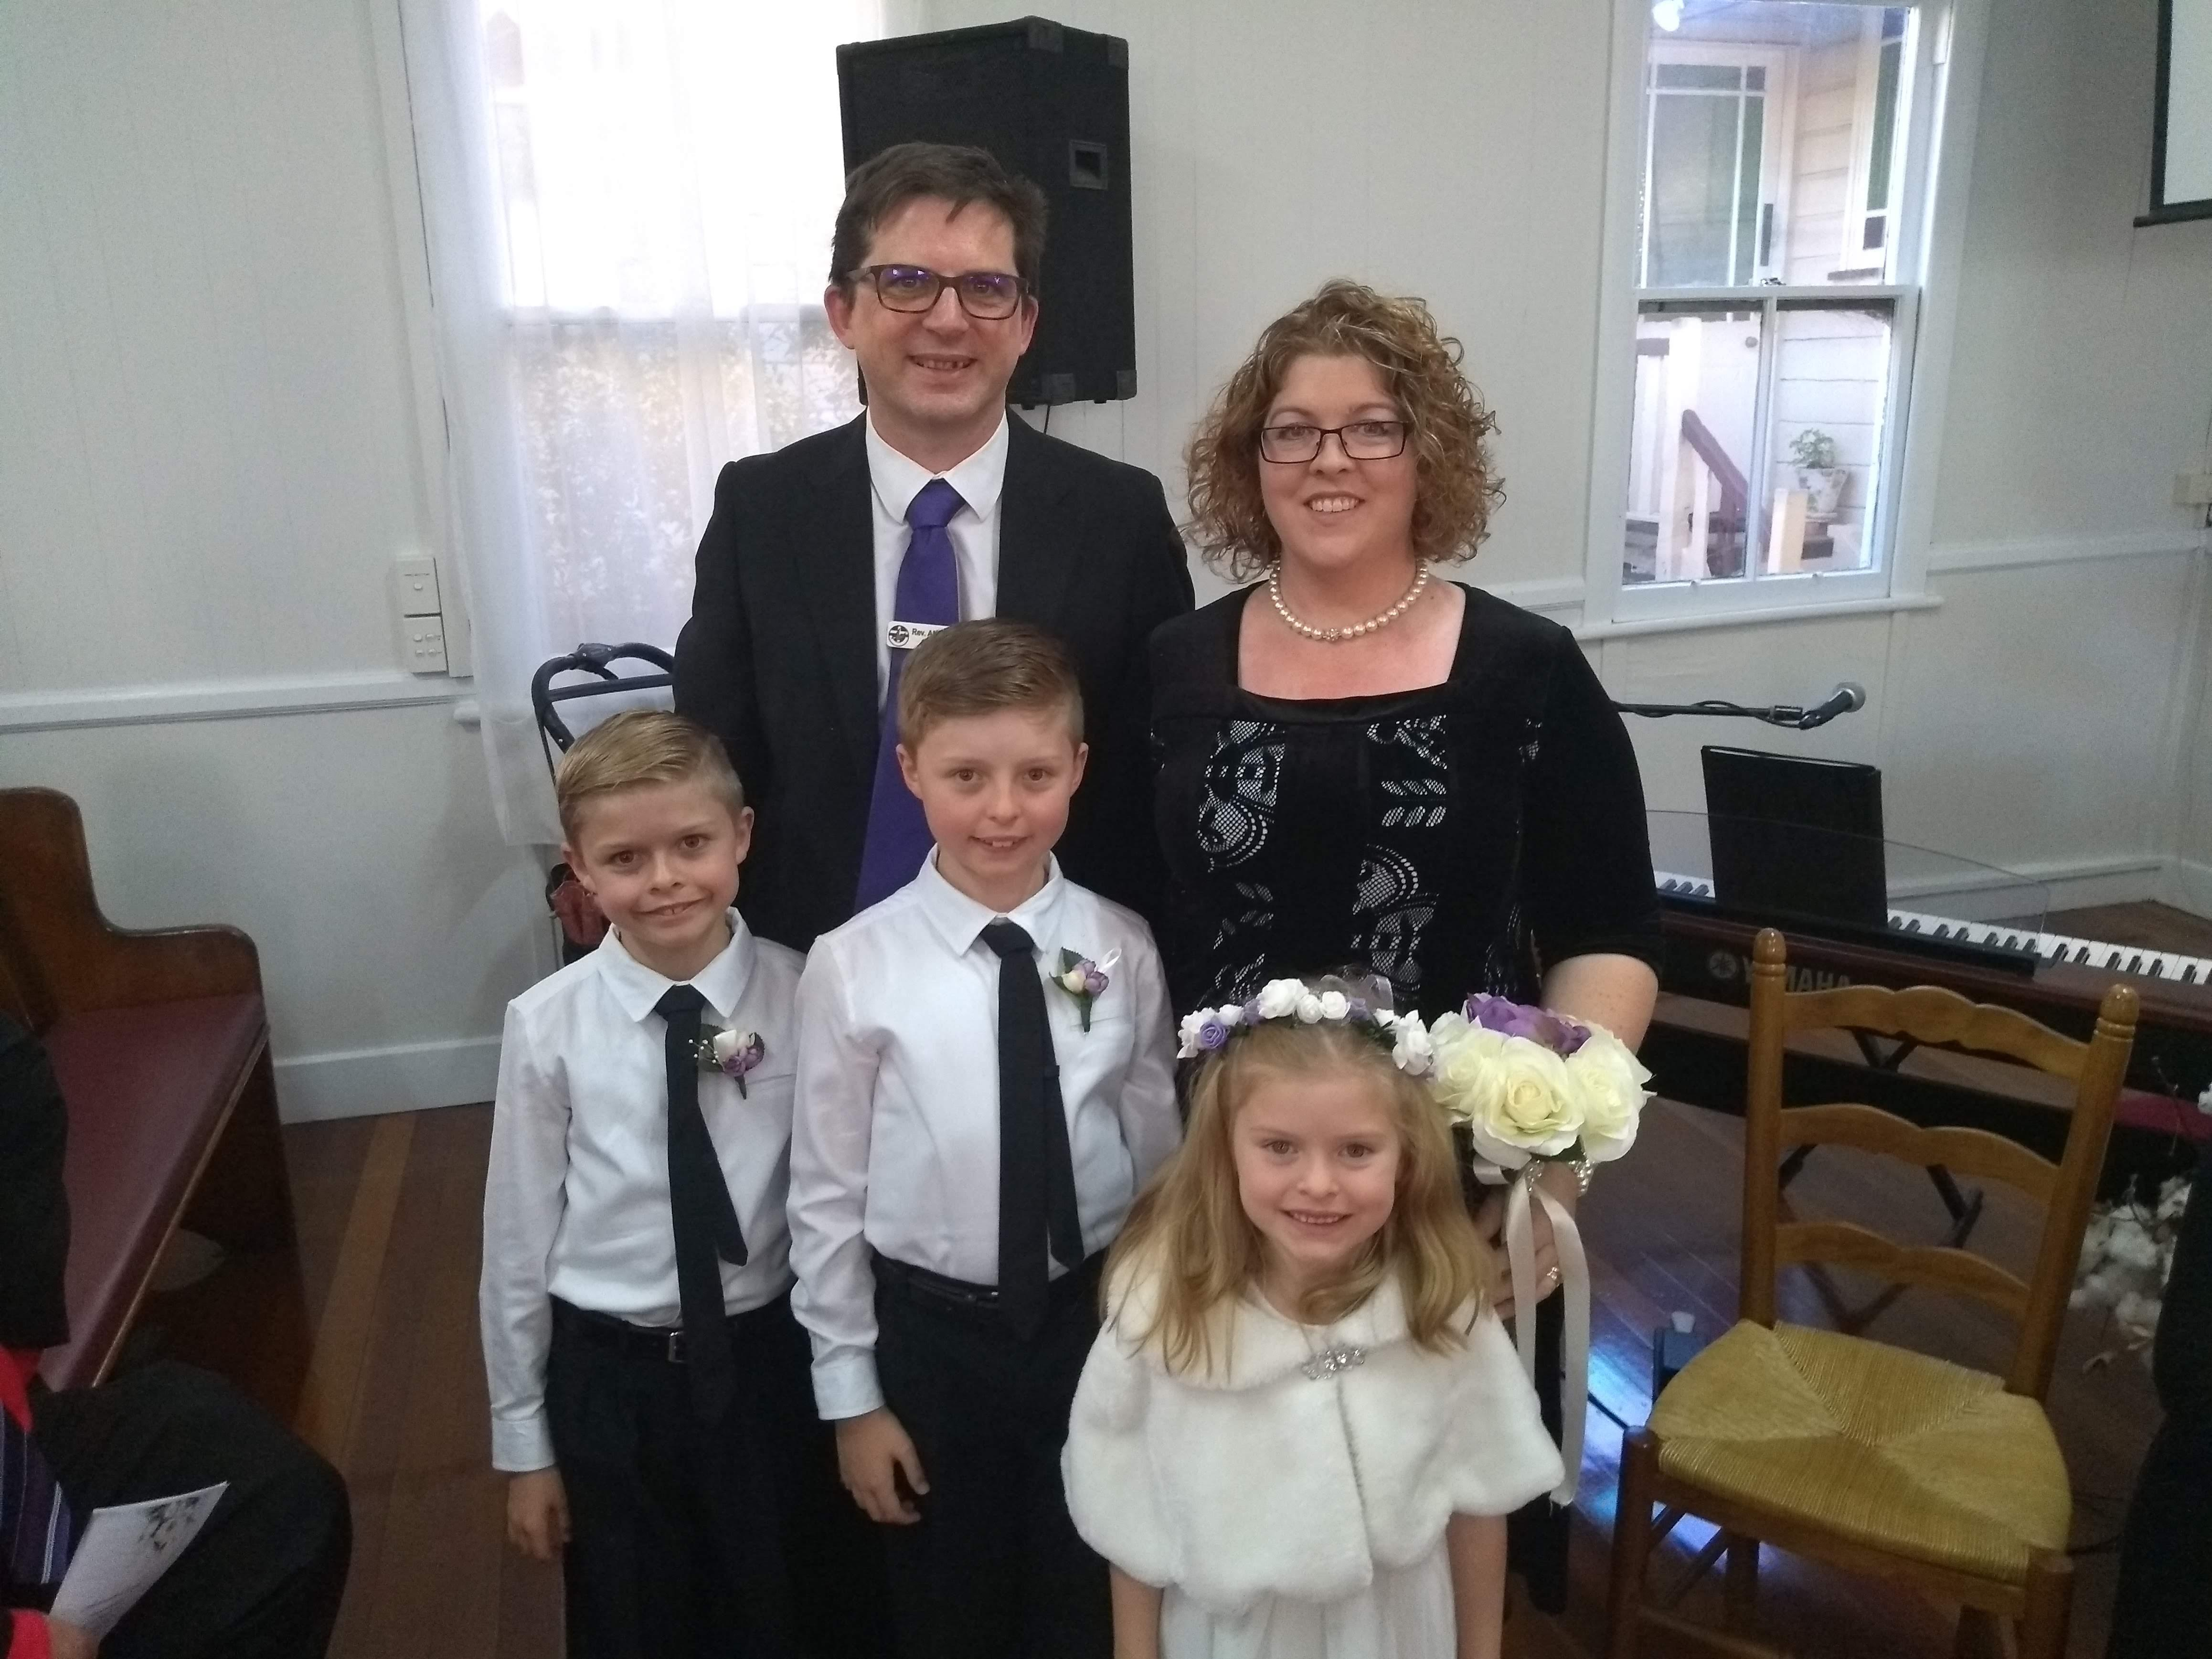 Gillies family at a wedding